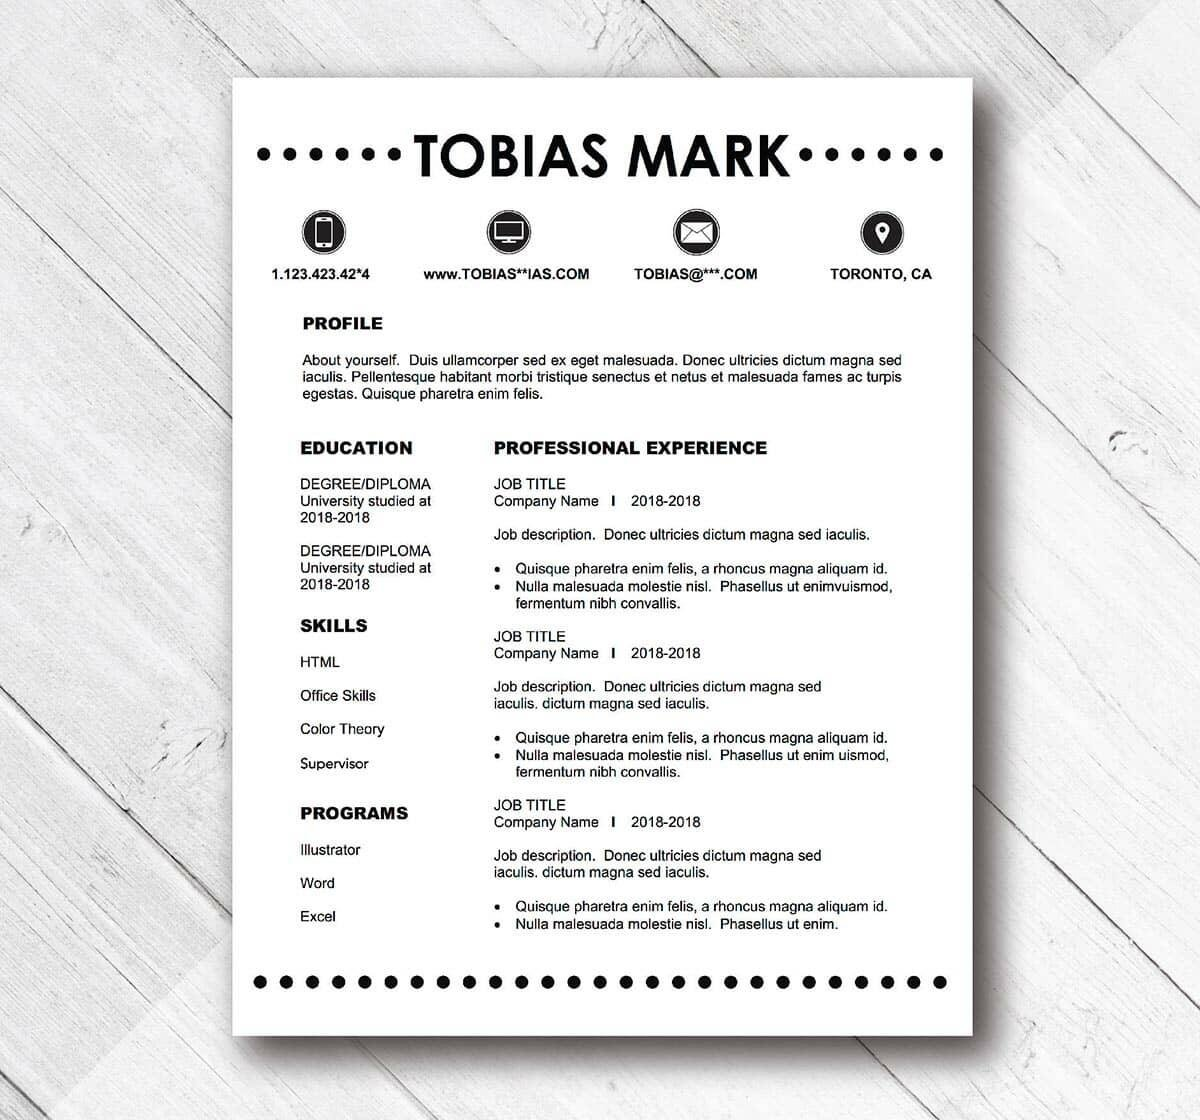 basic and simple resume template examples full format templates for undergraduate college Resume Simple Full Resume Format